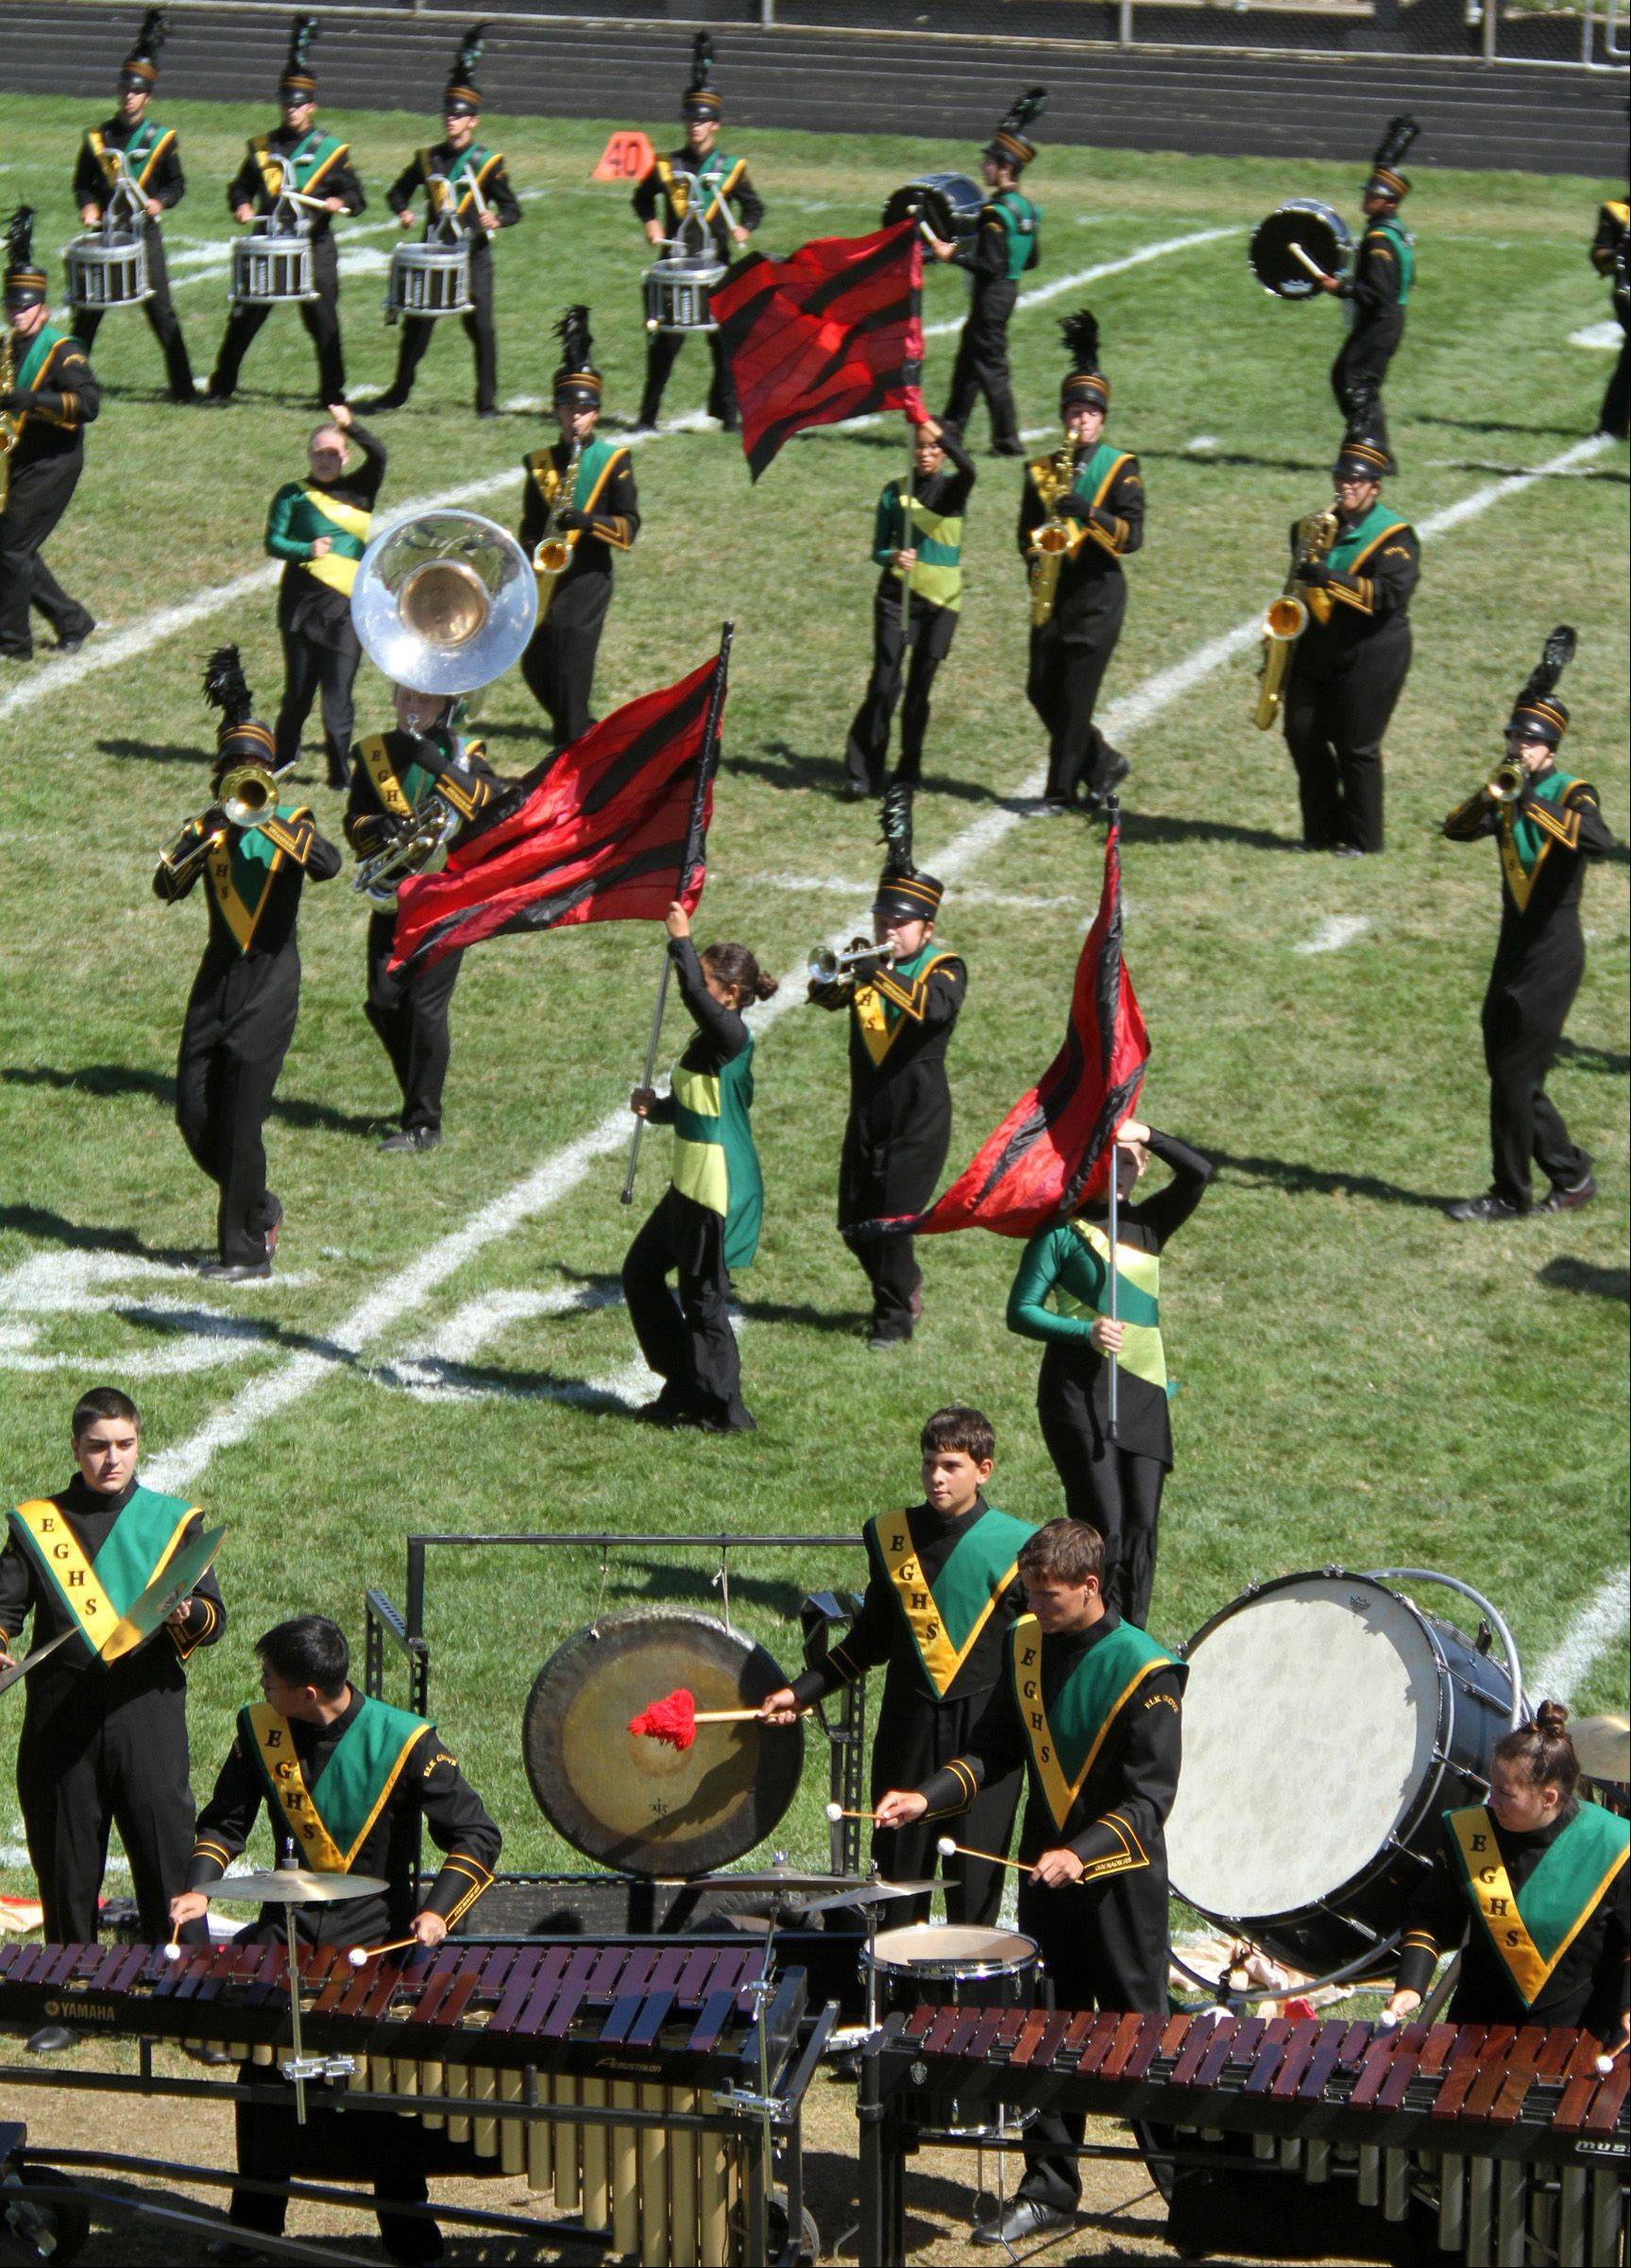 Elk Grove High School competes at the 34th annual Lancer Joust Marching Band Competition at Lake Park High School, West Campus, in Roselle on Saturday.